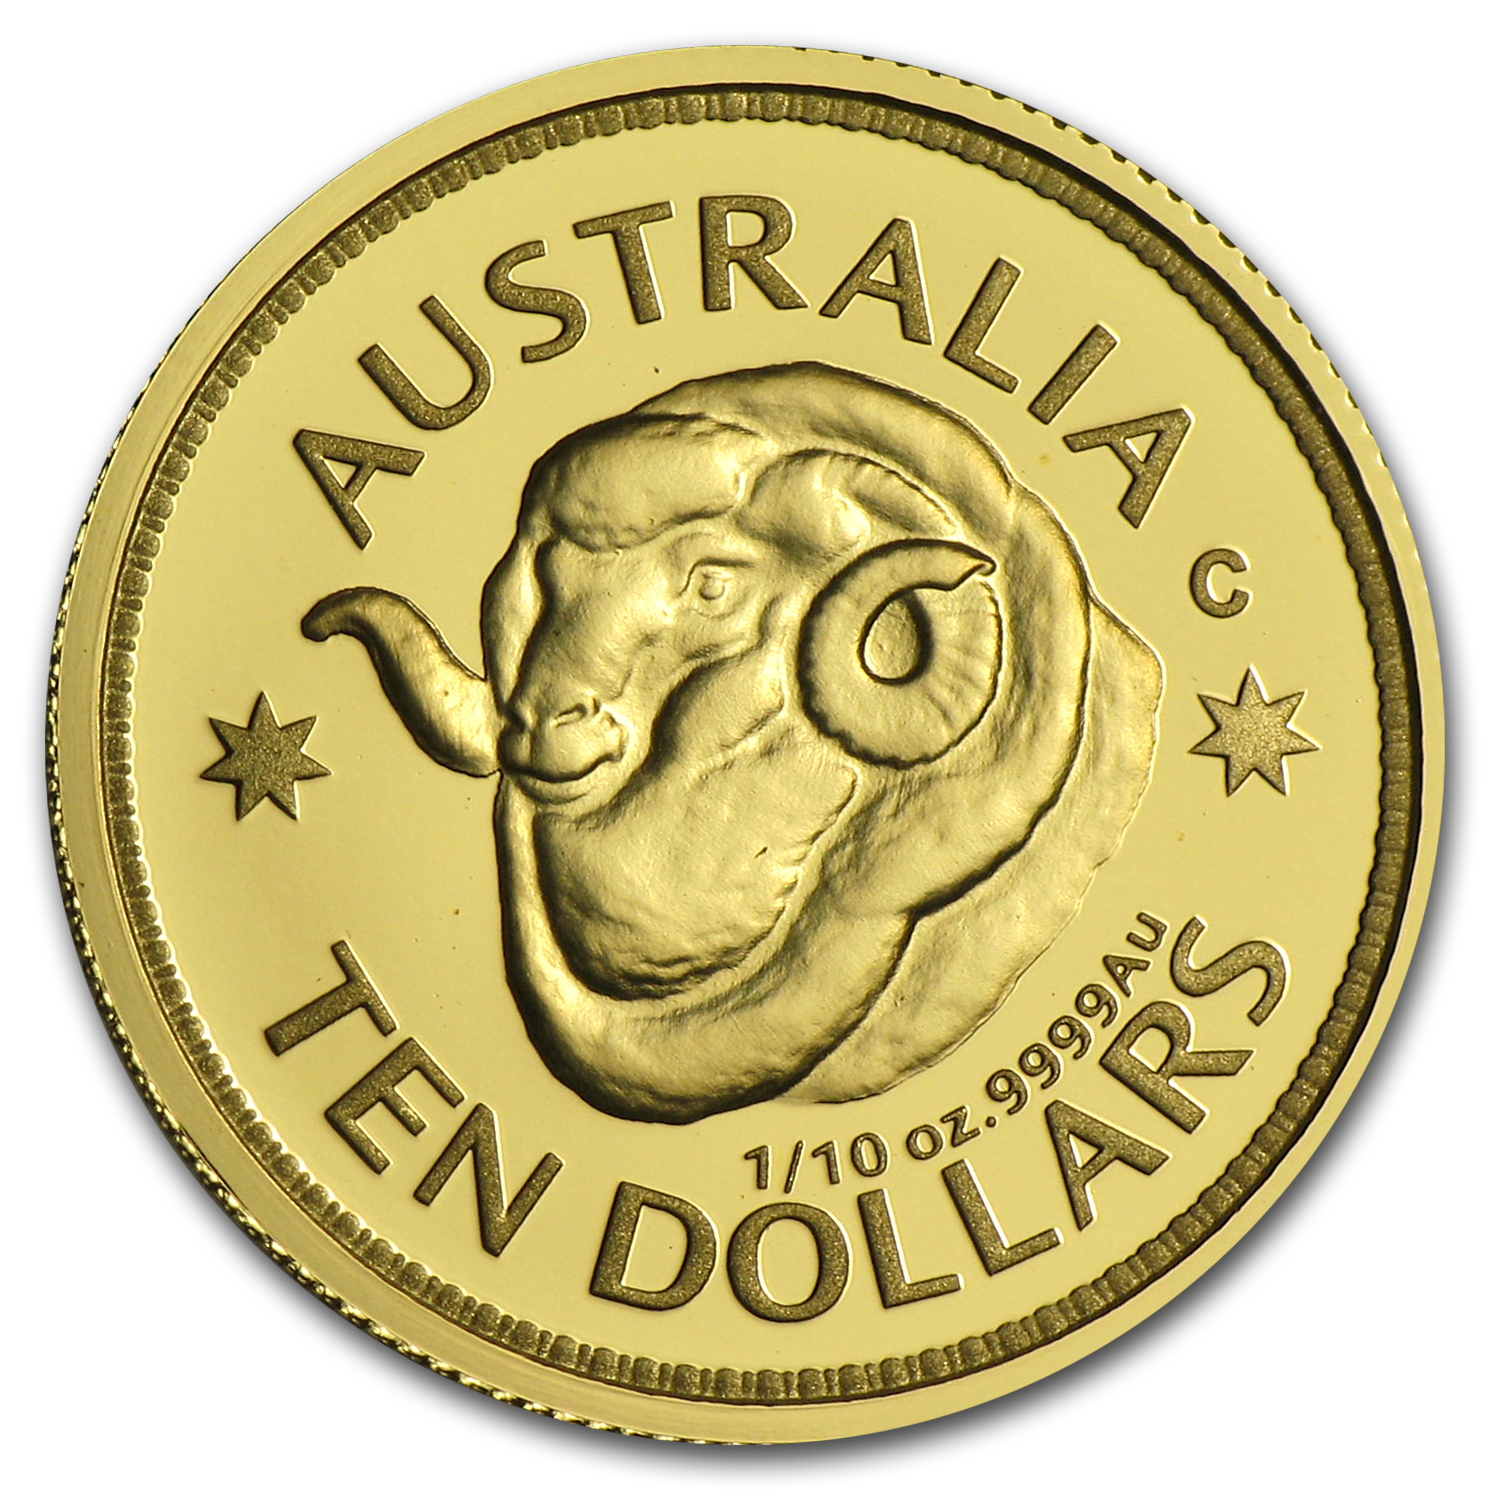 2011 Australia 1/10 oz Proof Gold Ram's Head